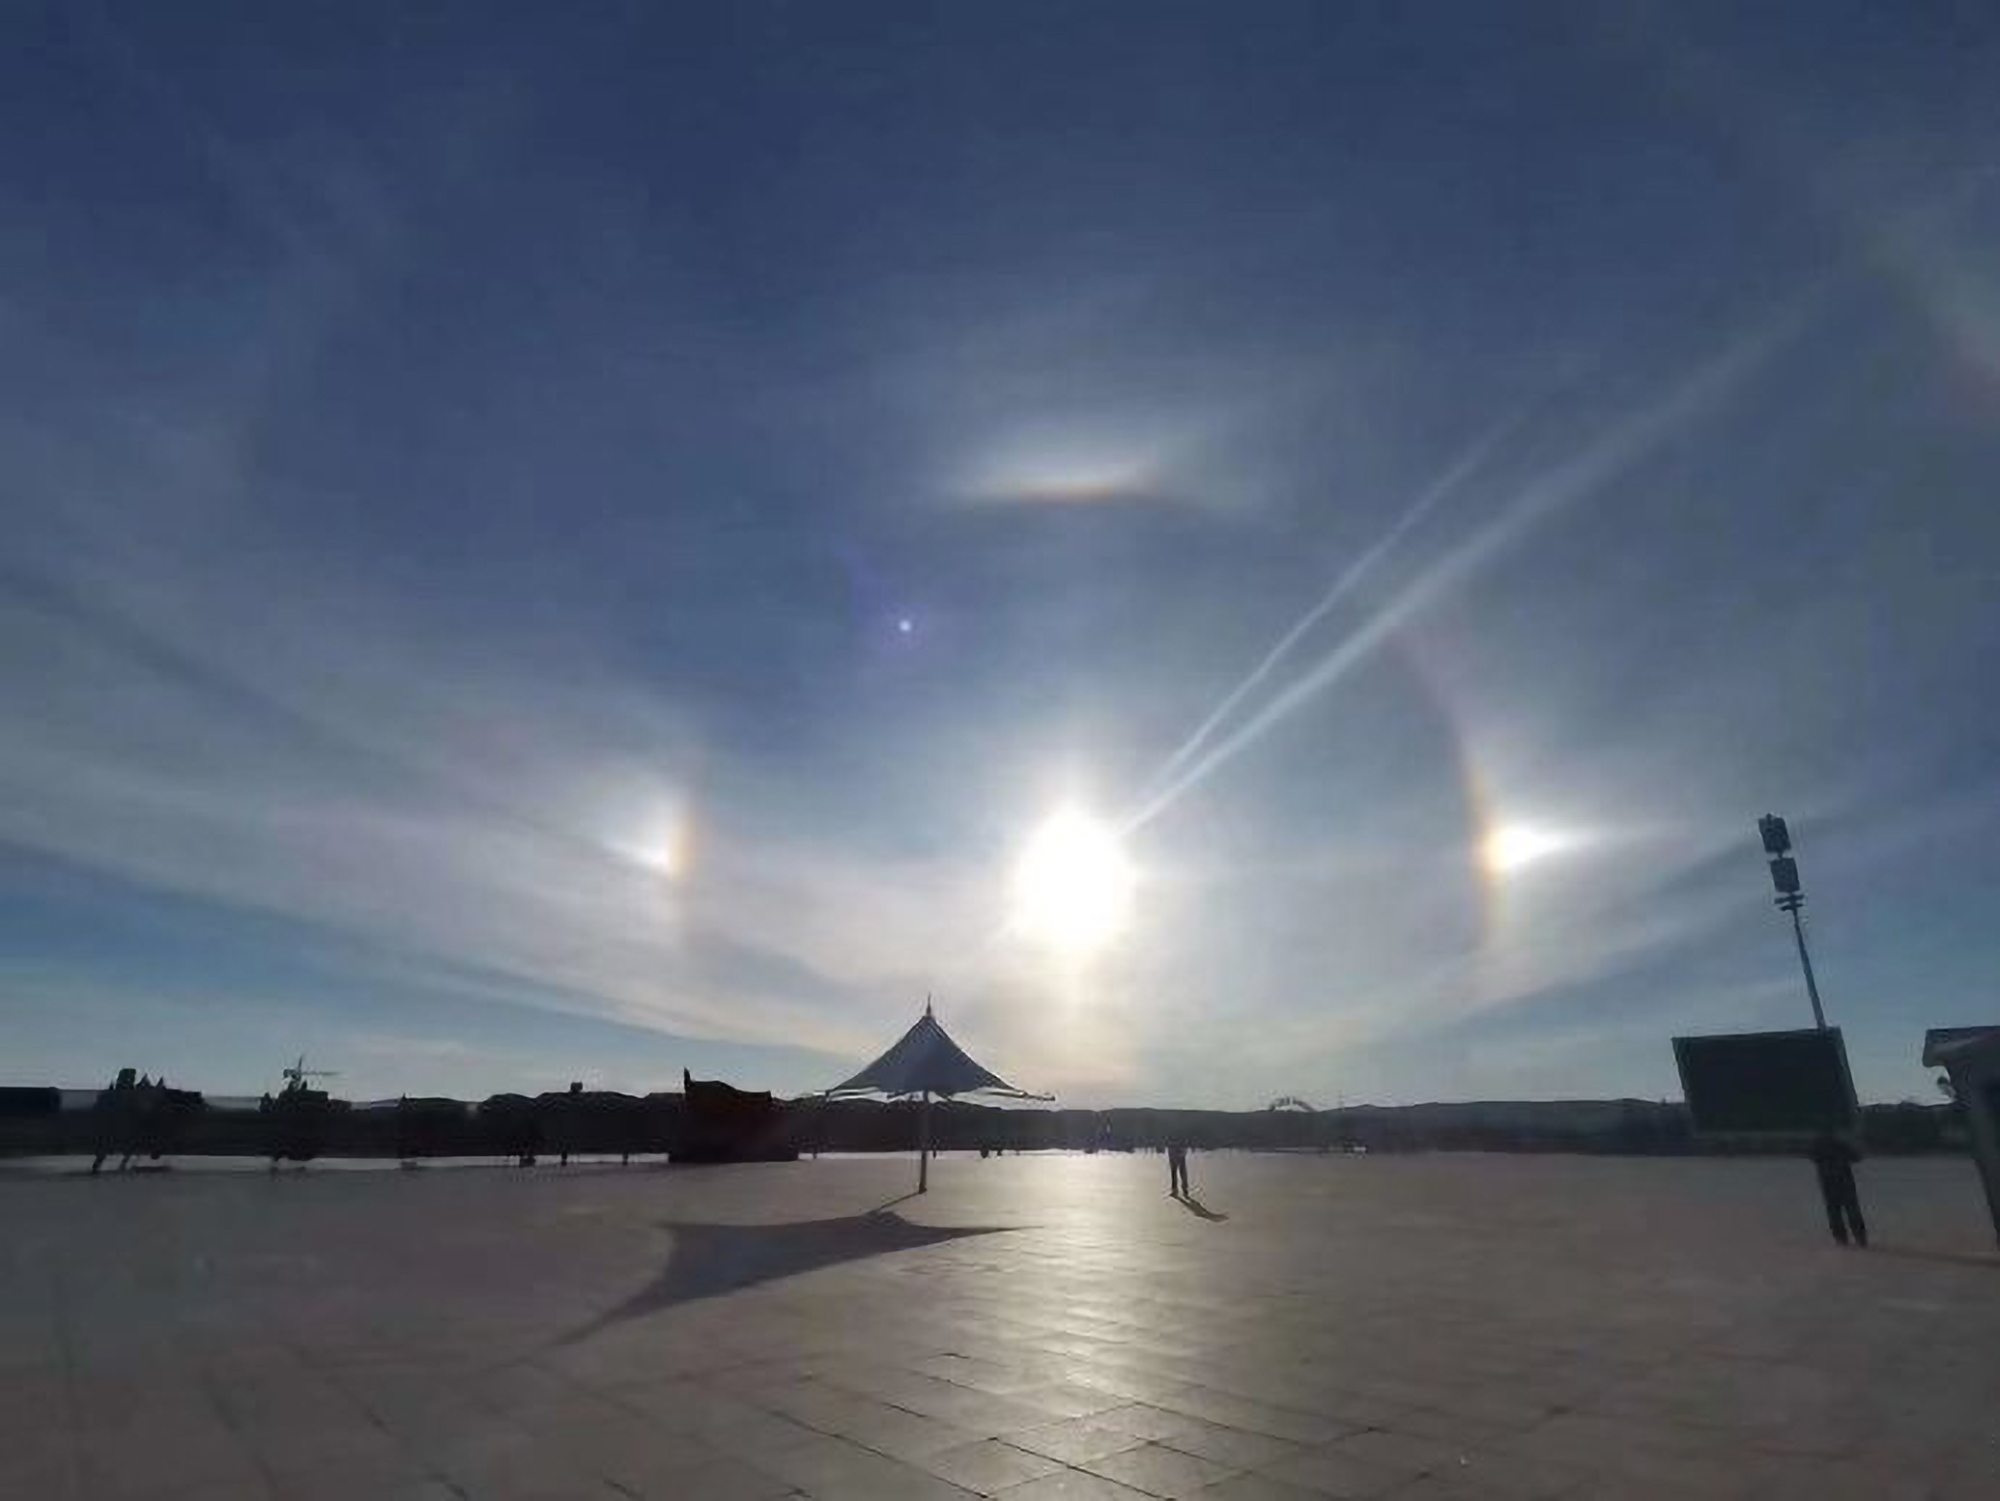 Natural Phenomenon Featuring Triple Suns Appears Over Chinese City